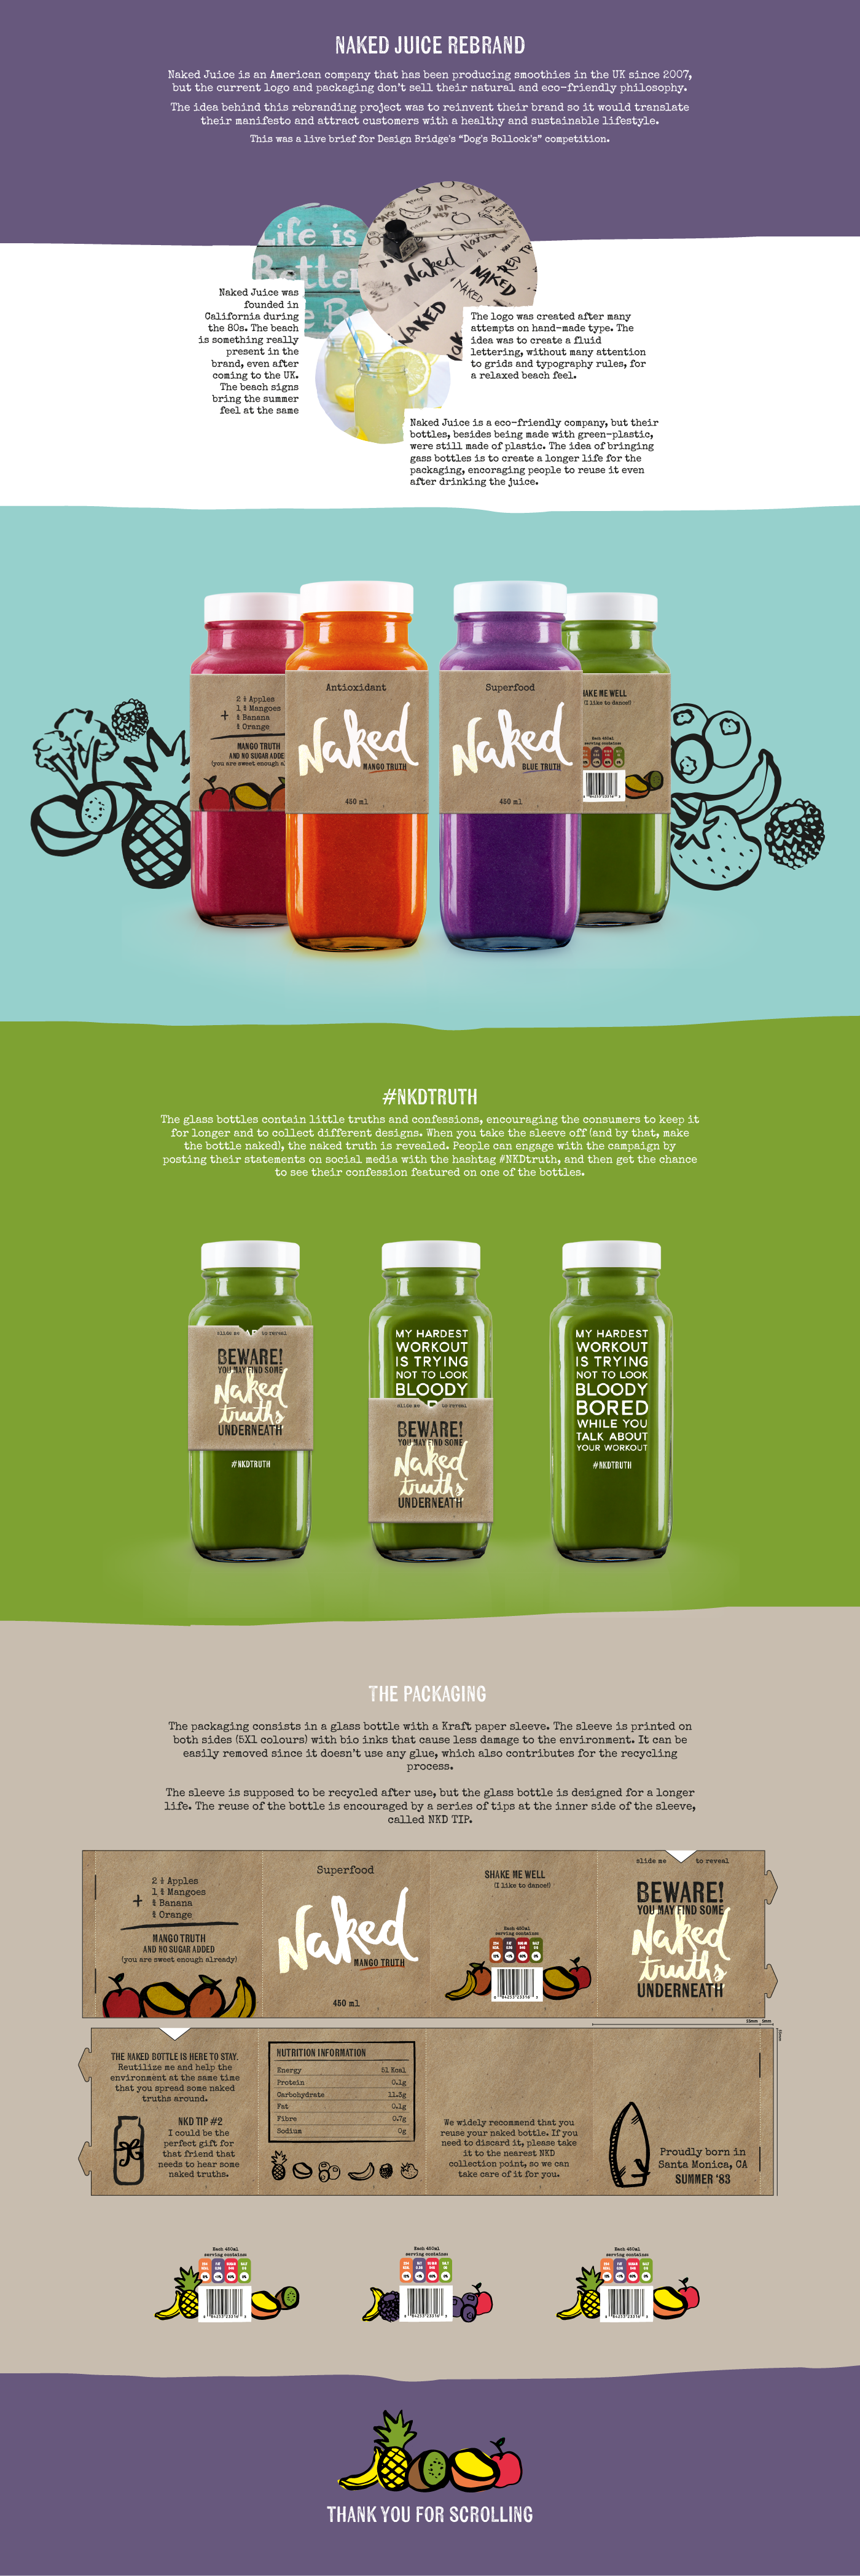 Branding, graphic design and packaging for Naked Juice by Mariana Costa, Porto Alegre Brazil. Idea behind this rebranding project was to reinvent their brand so it would translate their manifesto and attract customers with a healthy and sustainable lifestyle.PD